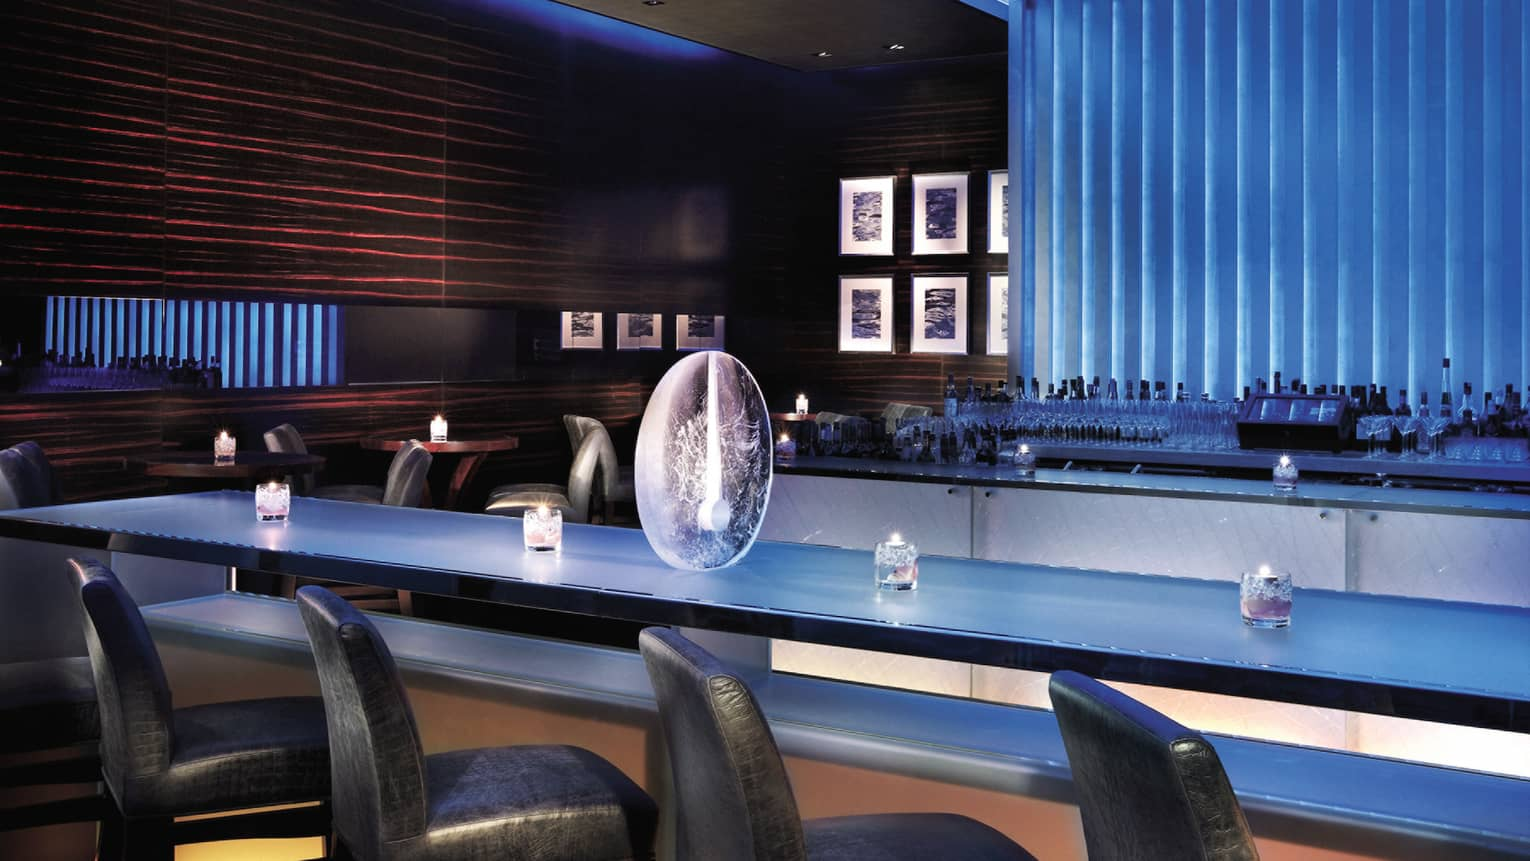 Bar Azul leather chairs along blue bar, glass candles and large round vase, wood panel wall